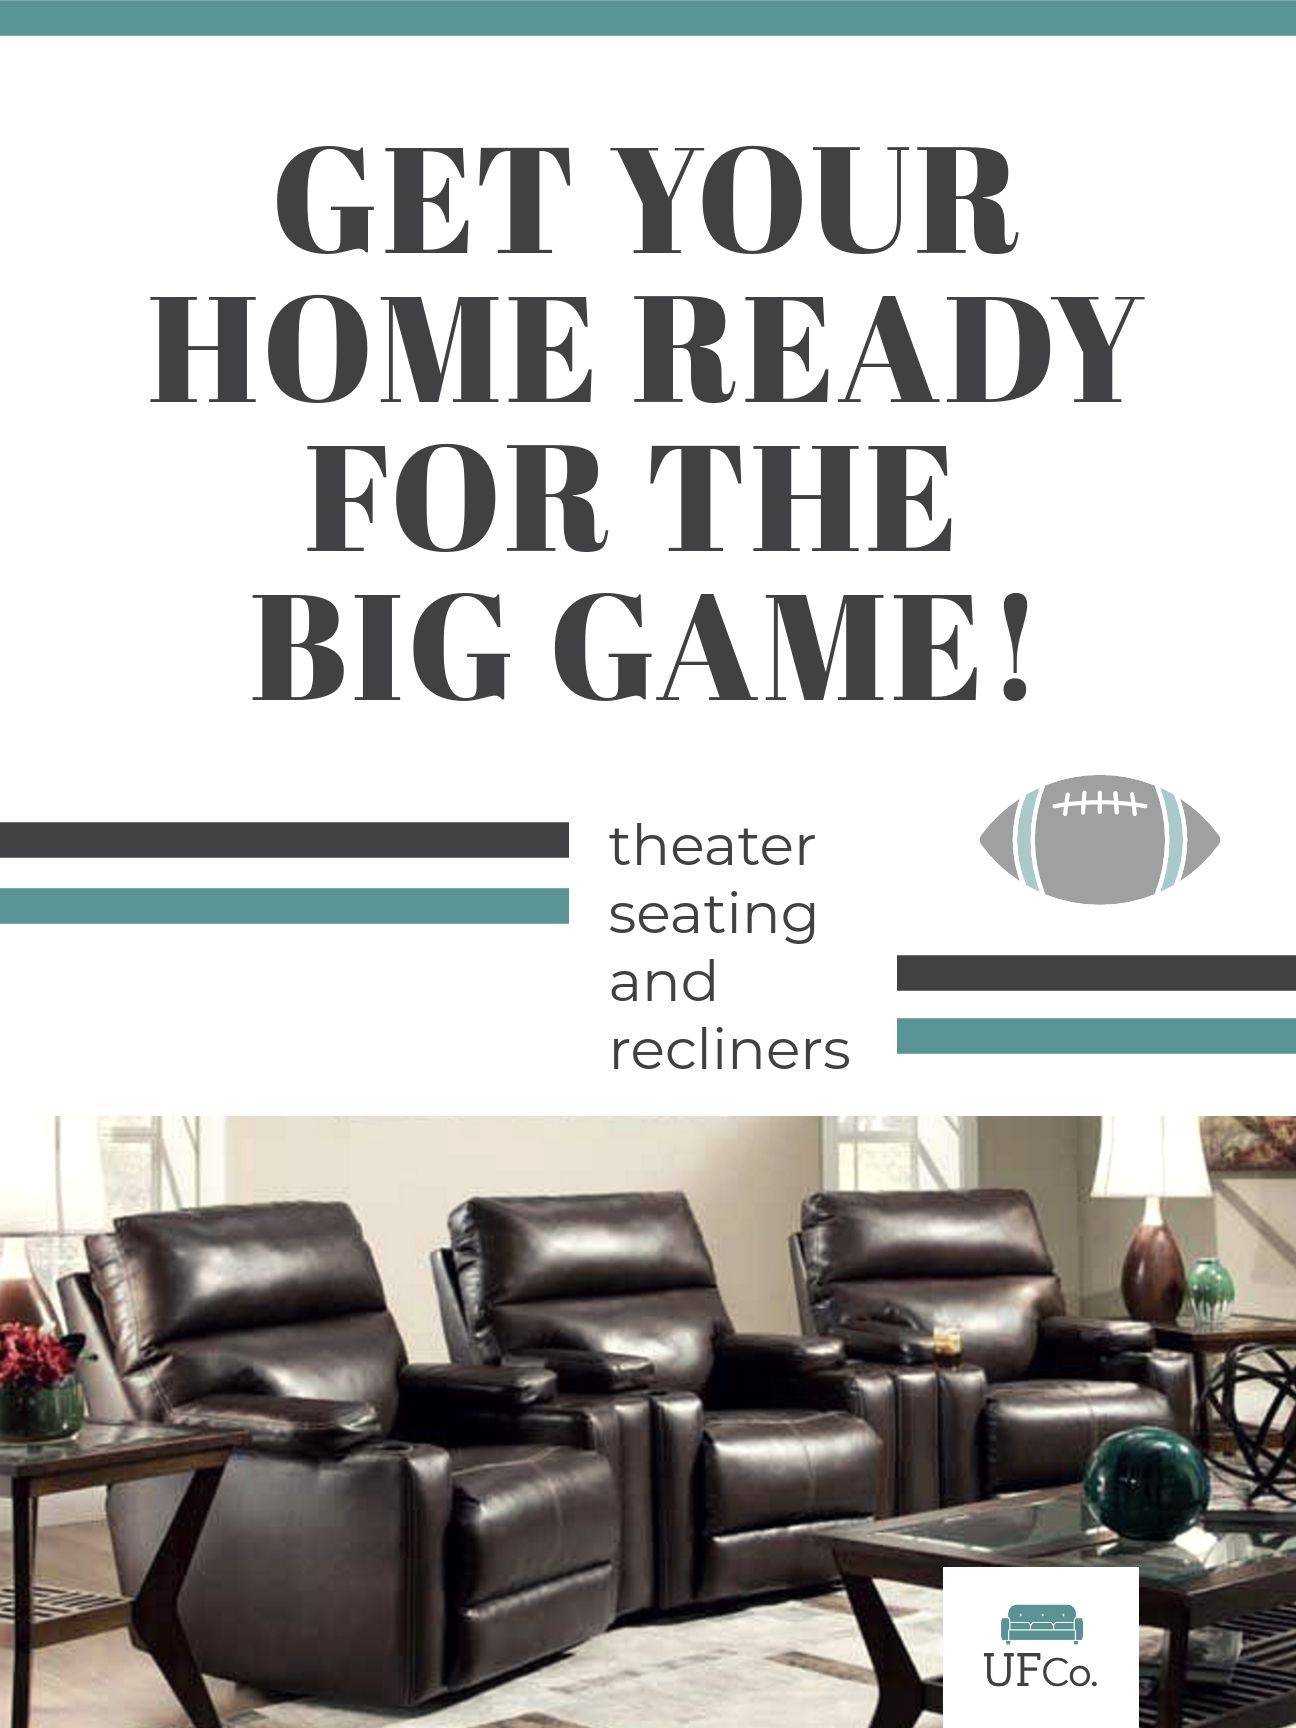 up to 75 off recliners and theater seating at unclaimed freight co